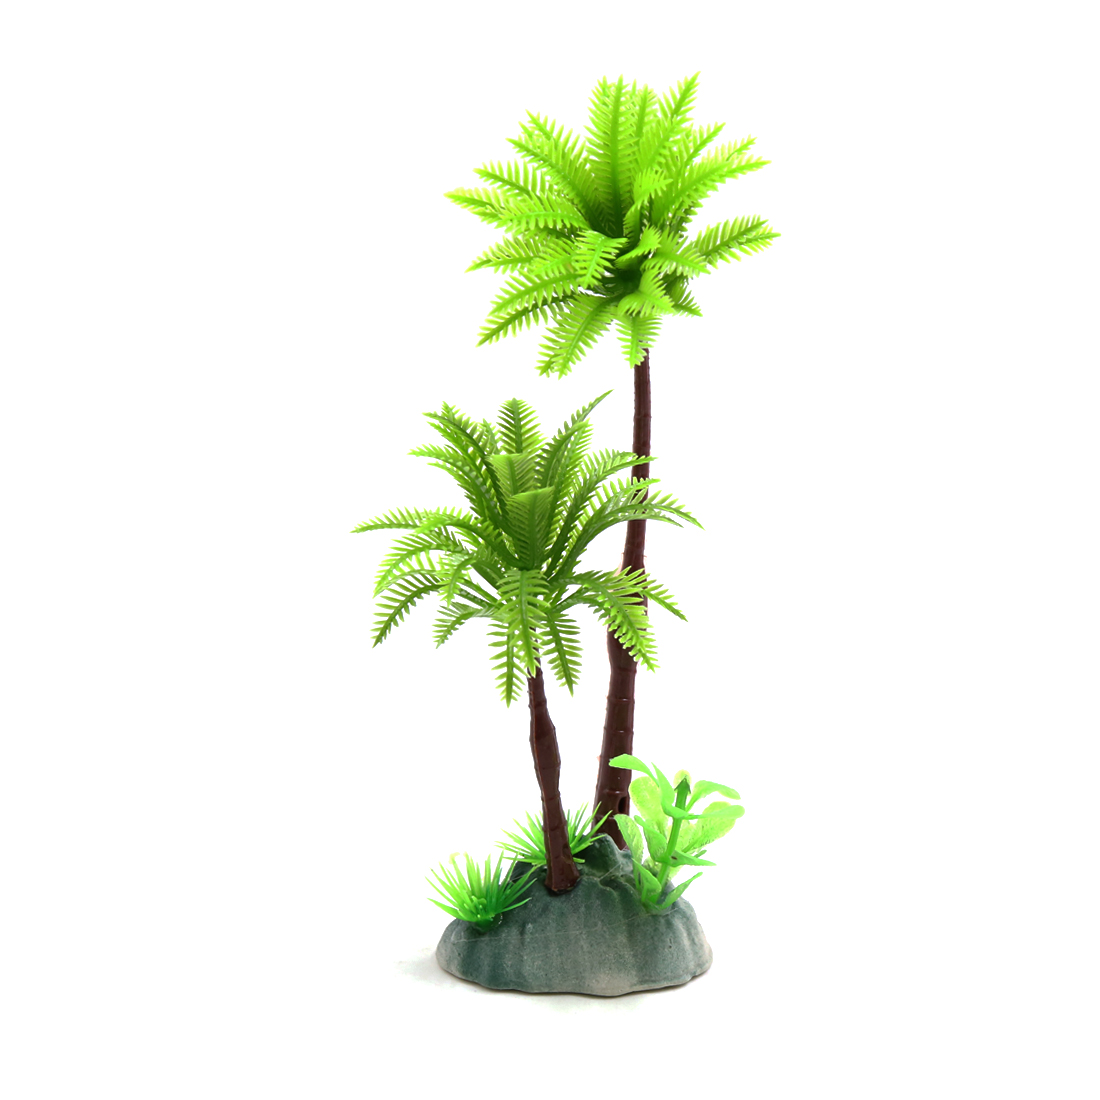 Plastic Coconut Trees Terrarium Tank Decoration for Reptiles Amphibians Lizards